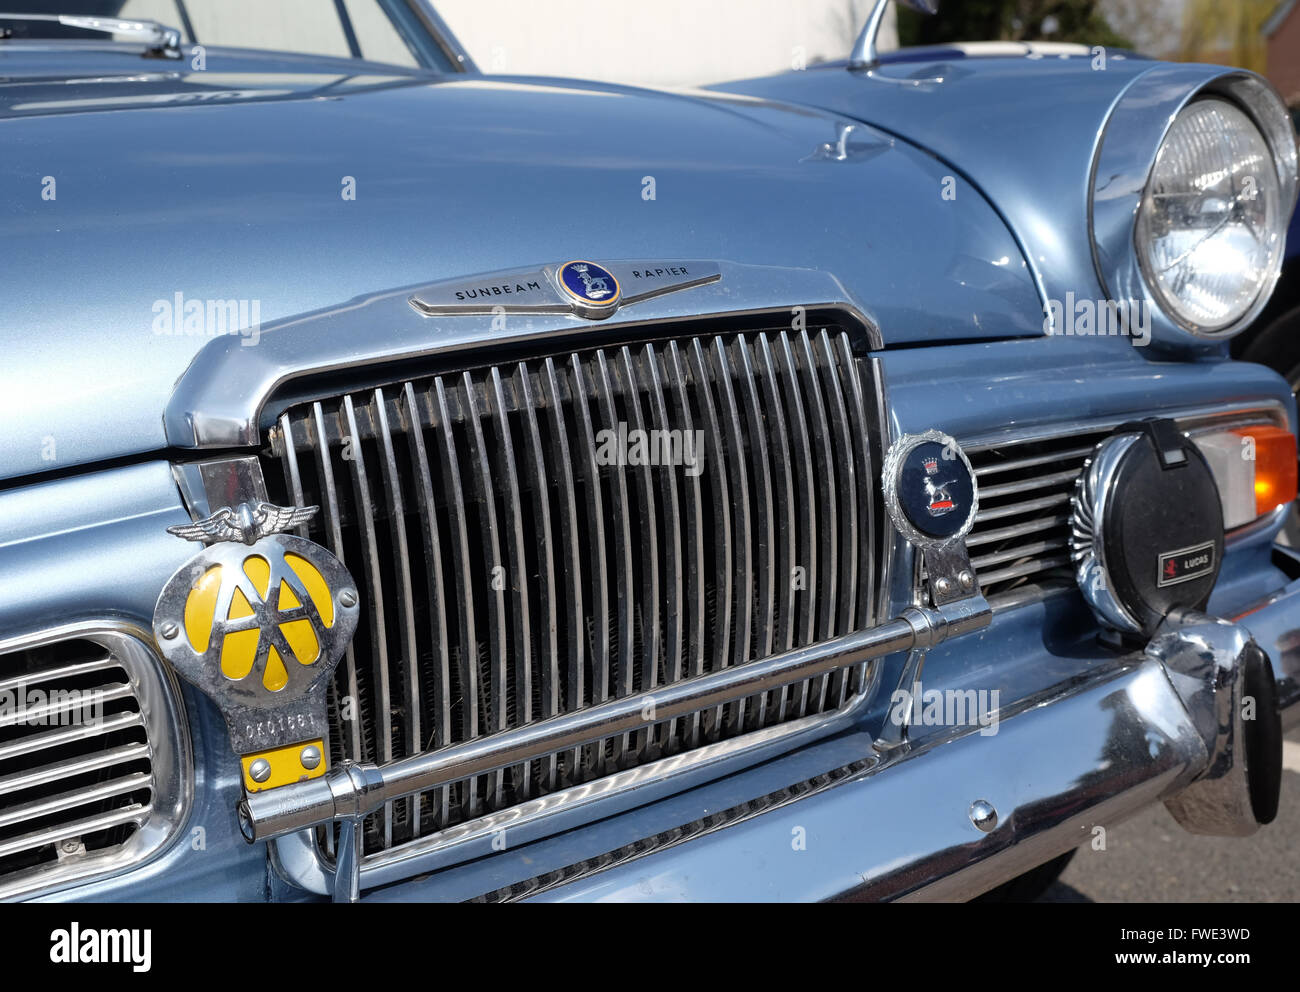 Sunbeam Rapier a British saloon car from the 1960s sixties - Stock Image